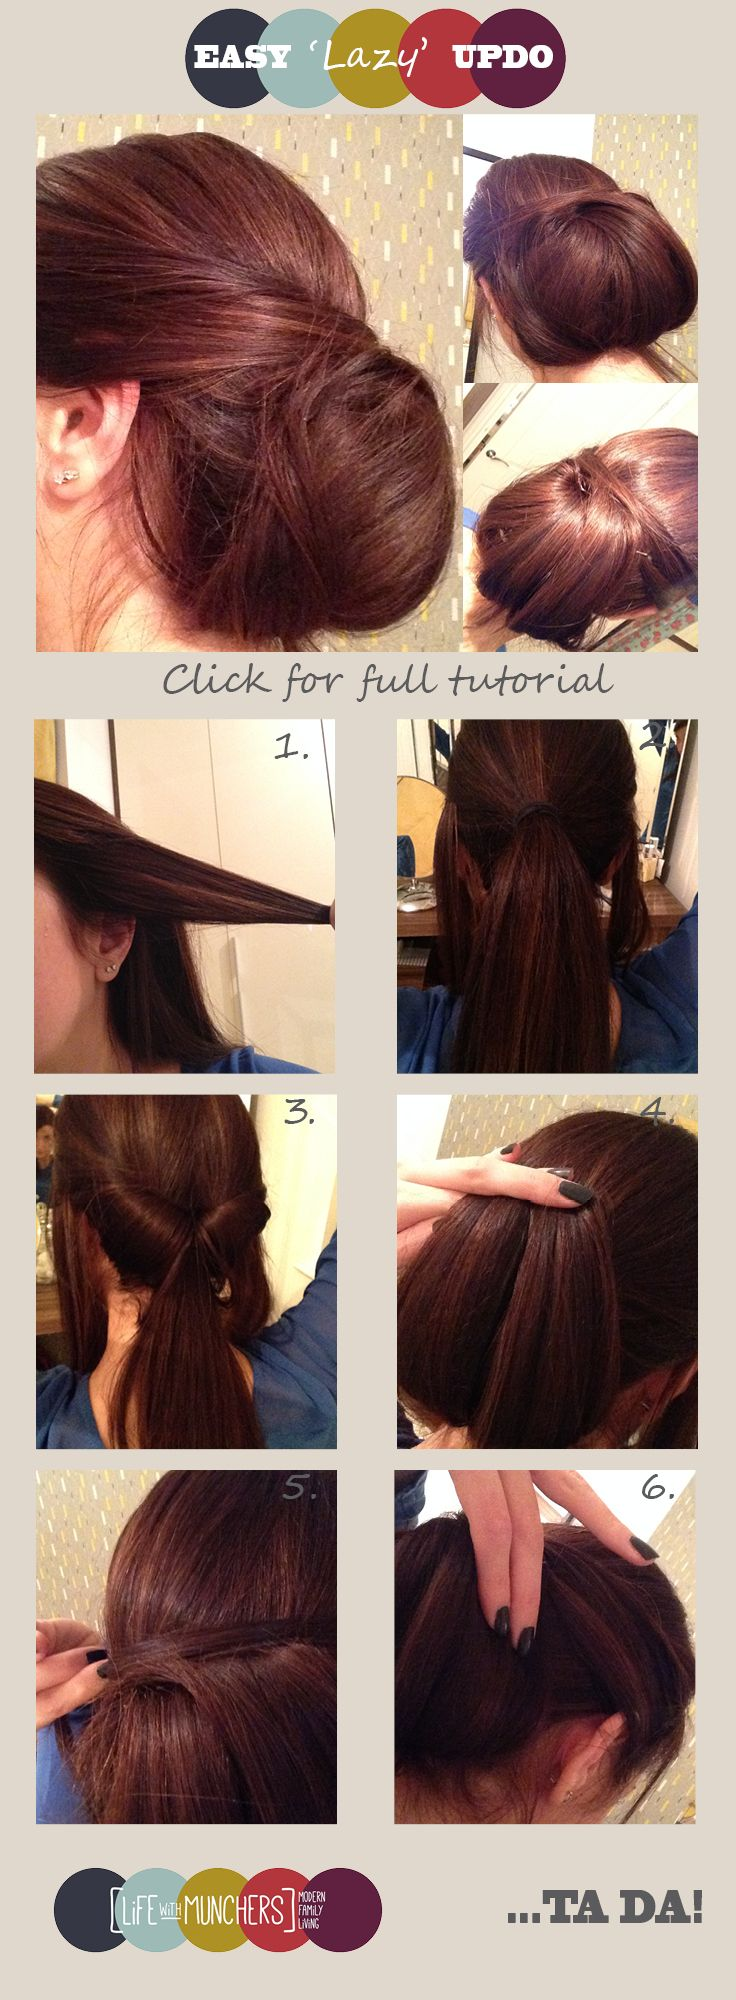 Easy updo for long hair tutorial cheats chignon tutorial hair